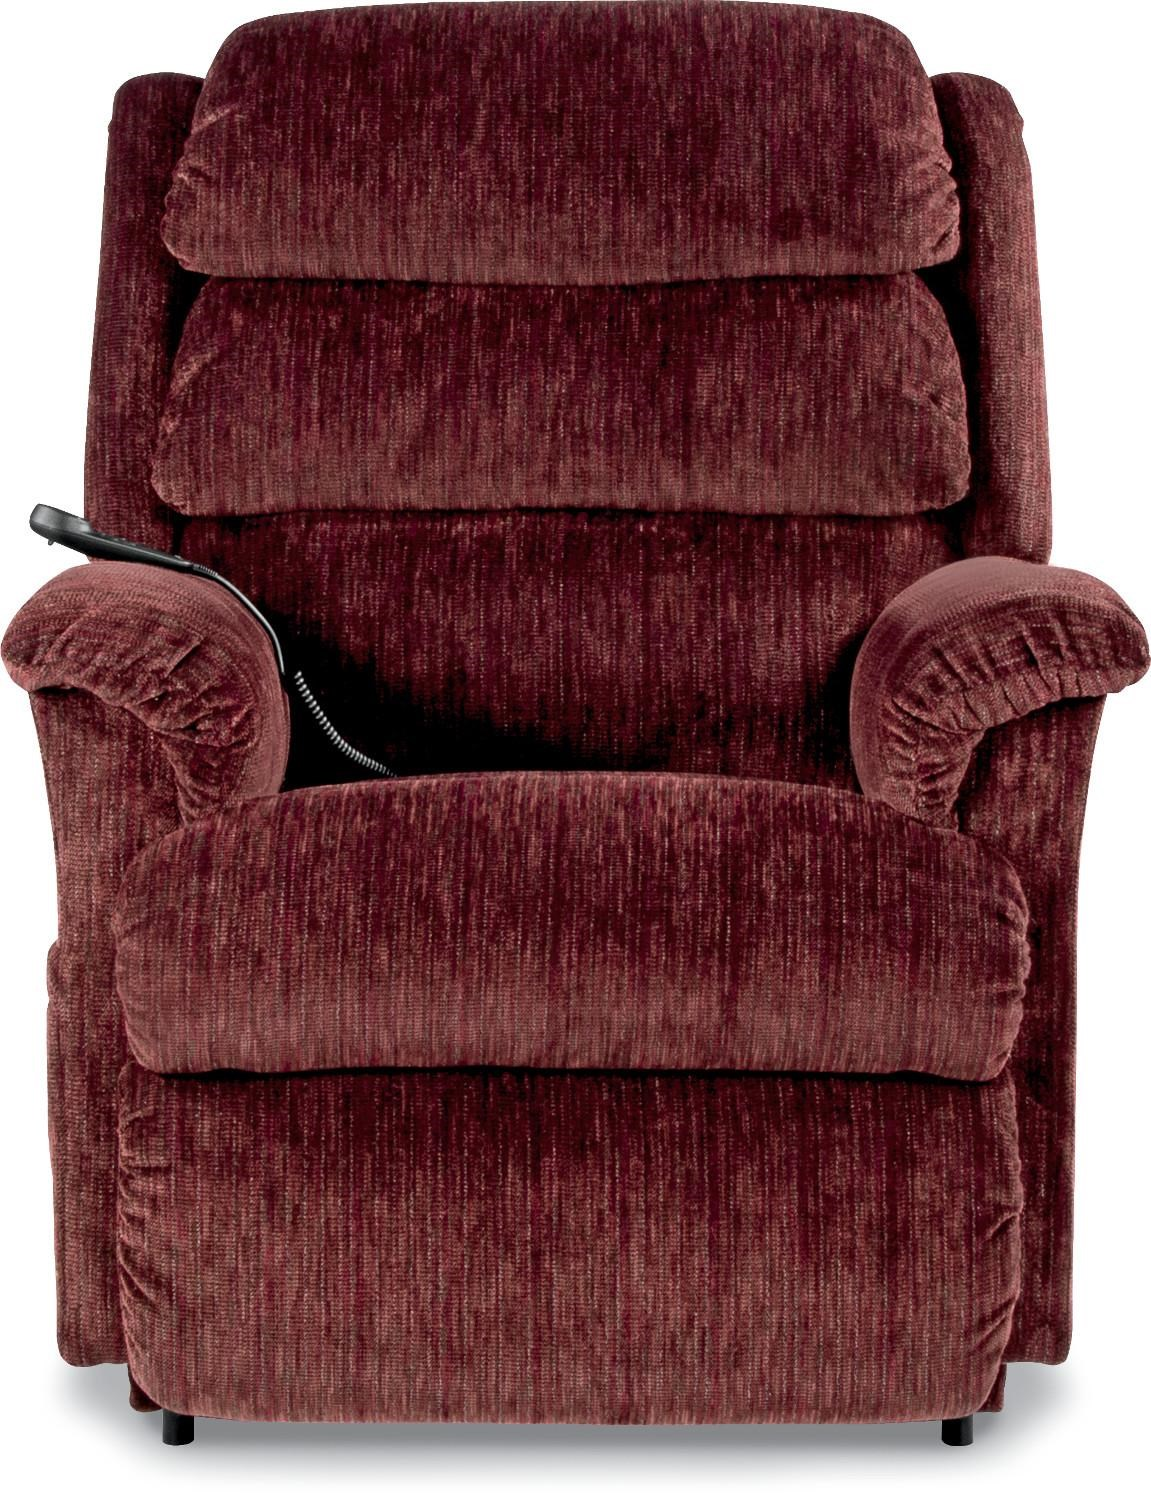 La-Z-Boy Astor Platinum Luxury Lift® Power-Recline-XR with  sc 1 st  Boulevard Home Furnishings : lazy boy lift chair recliners - islam-shia.org